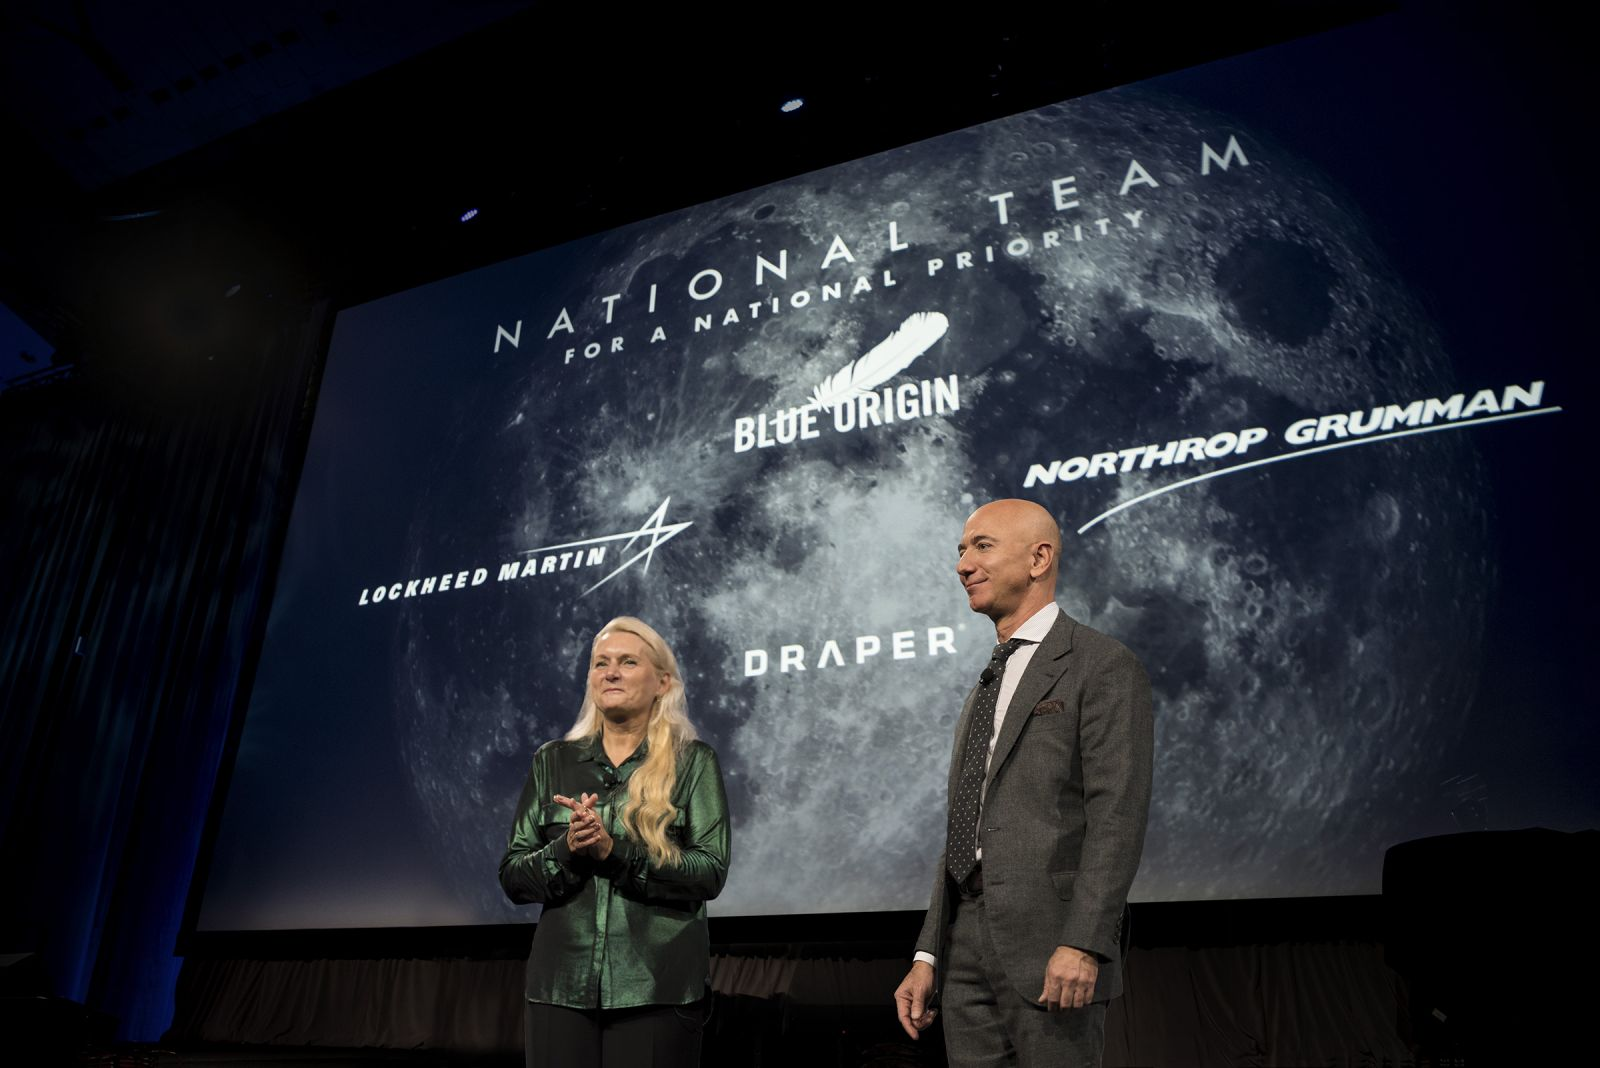 Bezos announces Blue Moon-based human lander team